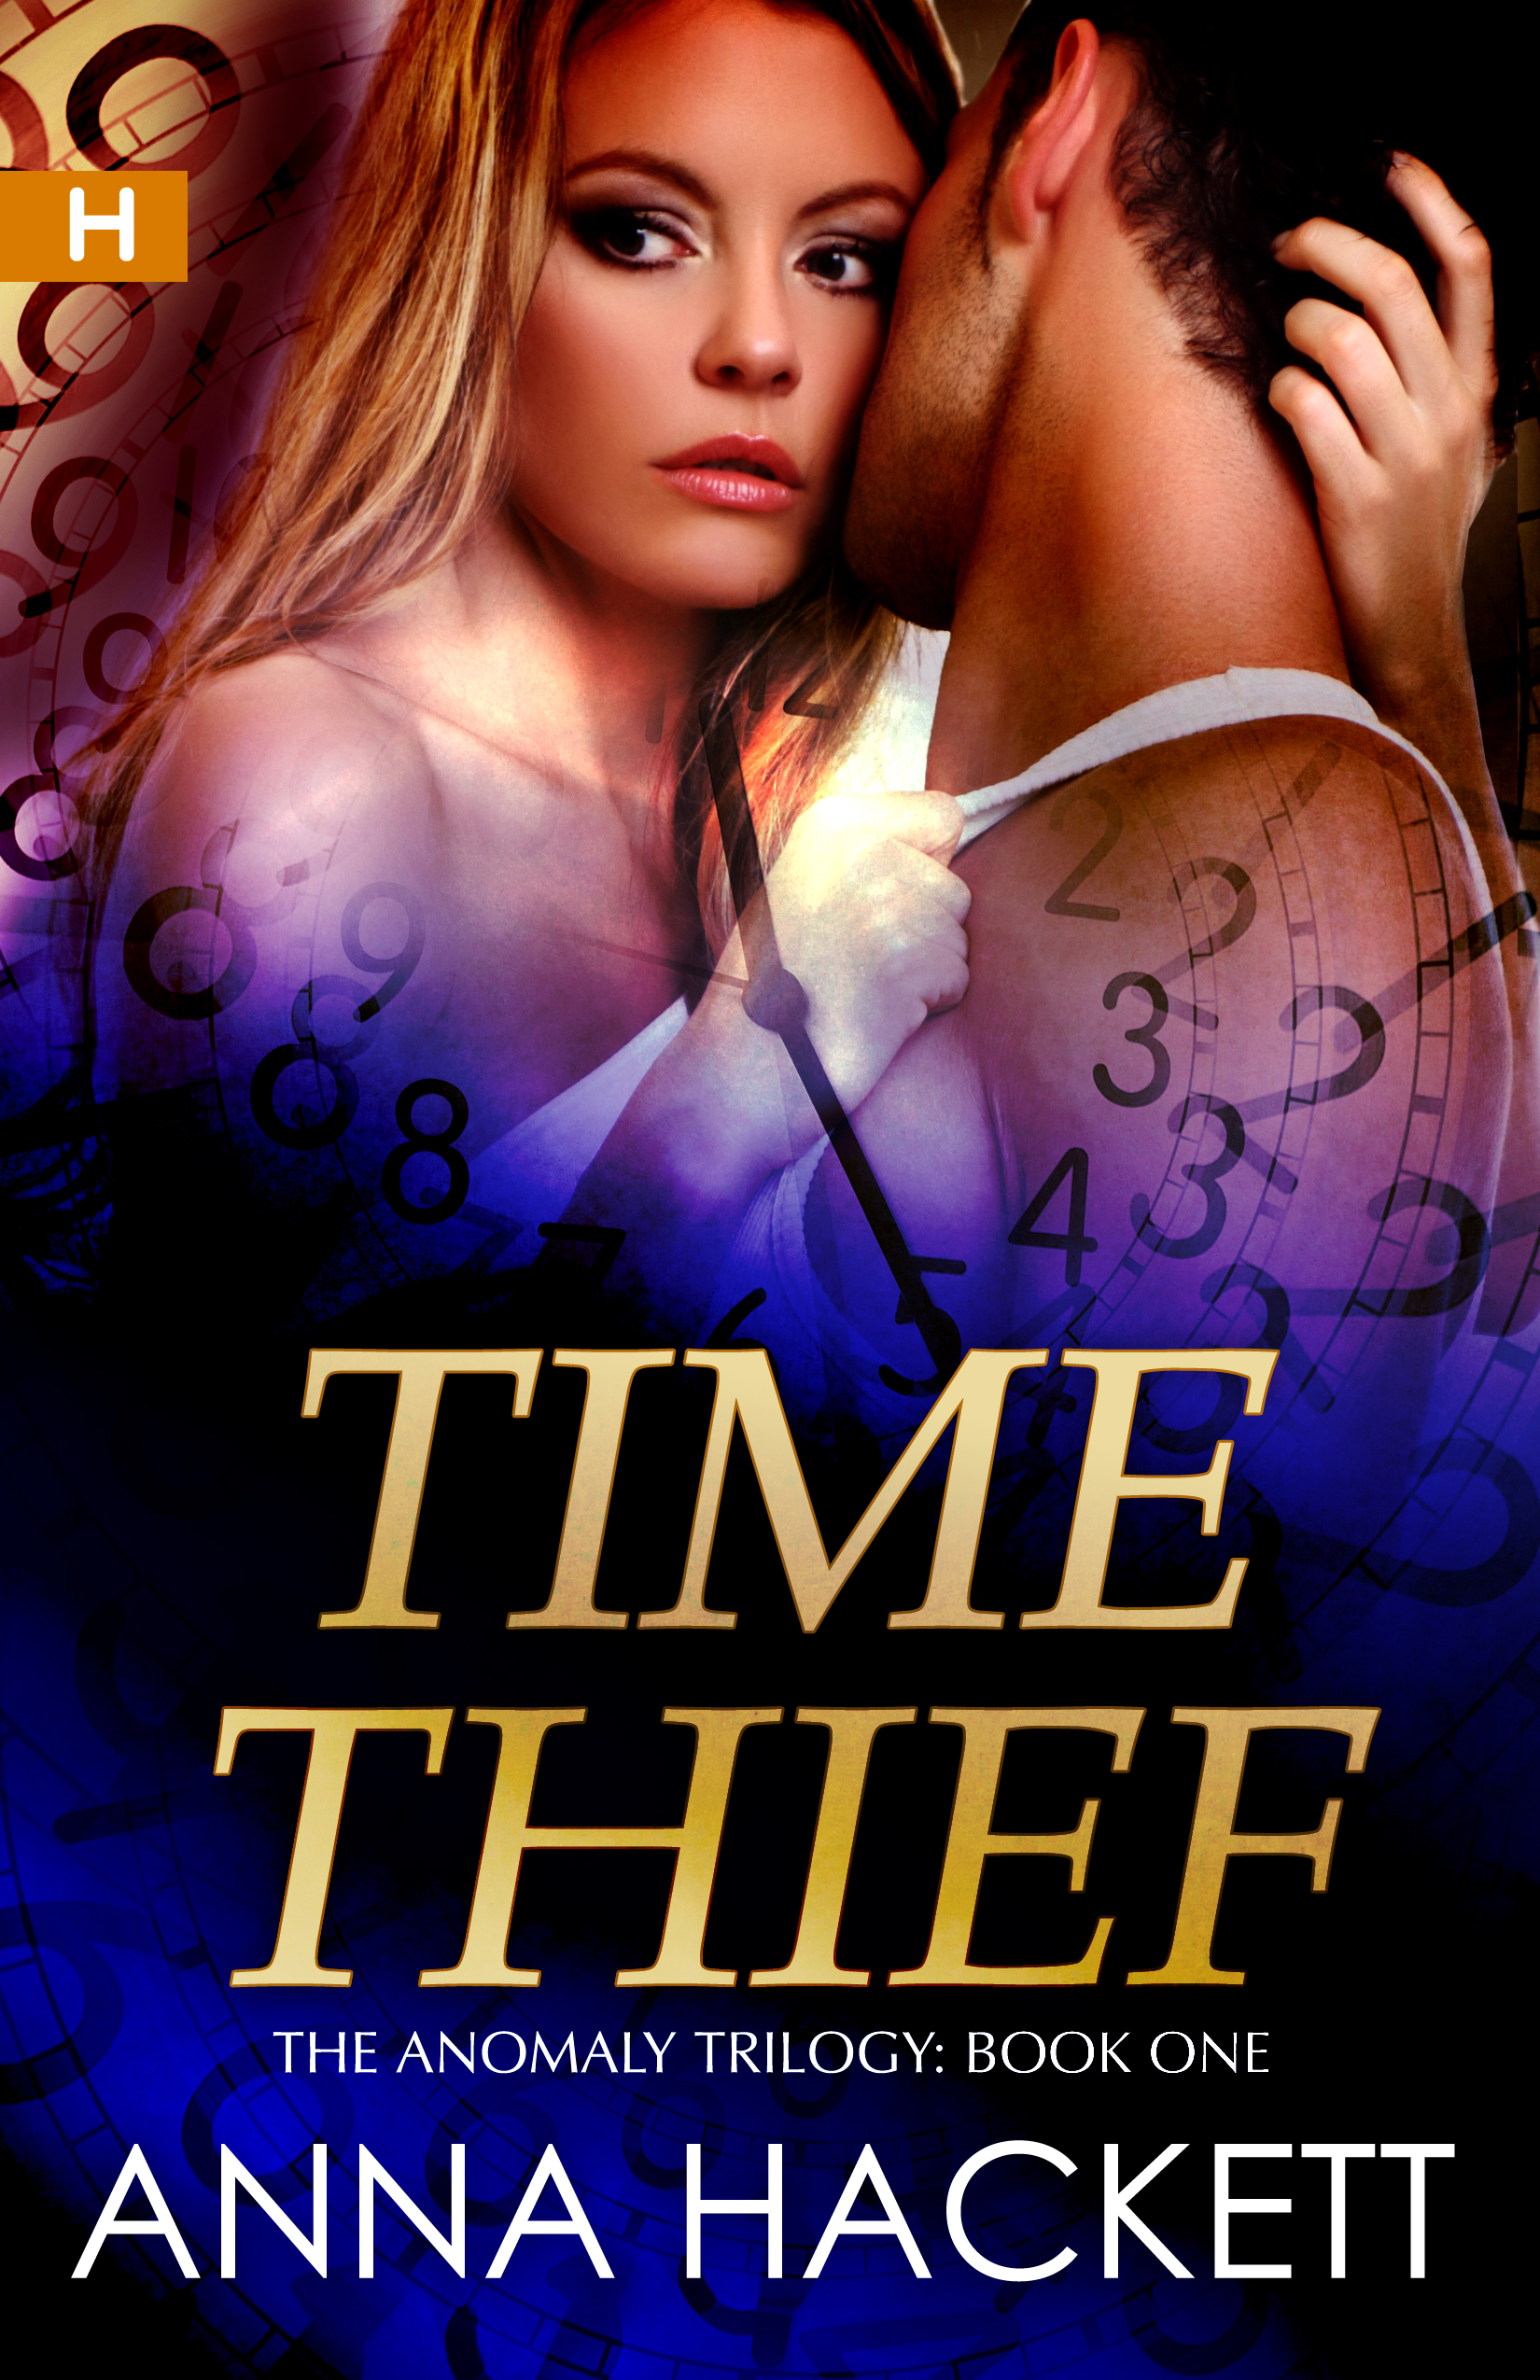 Anna Hackett - Time Thief (Anomaly Trilogy #1)